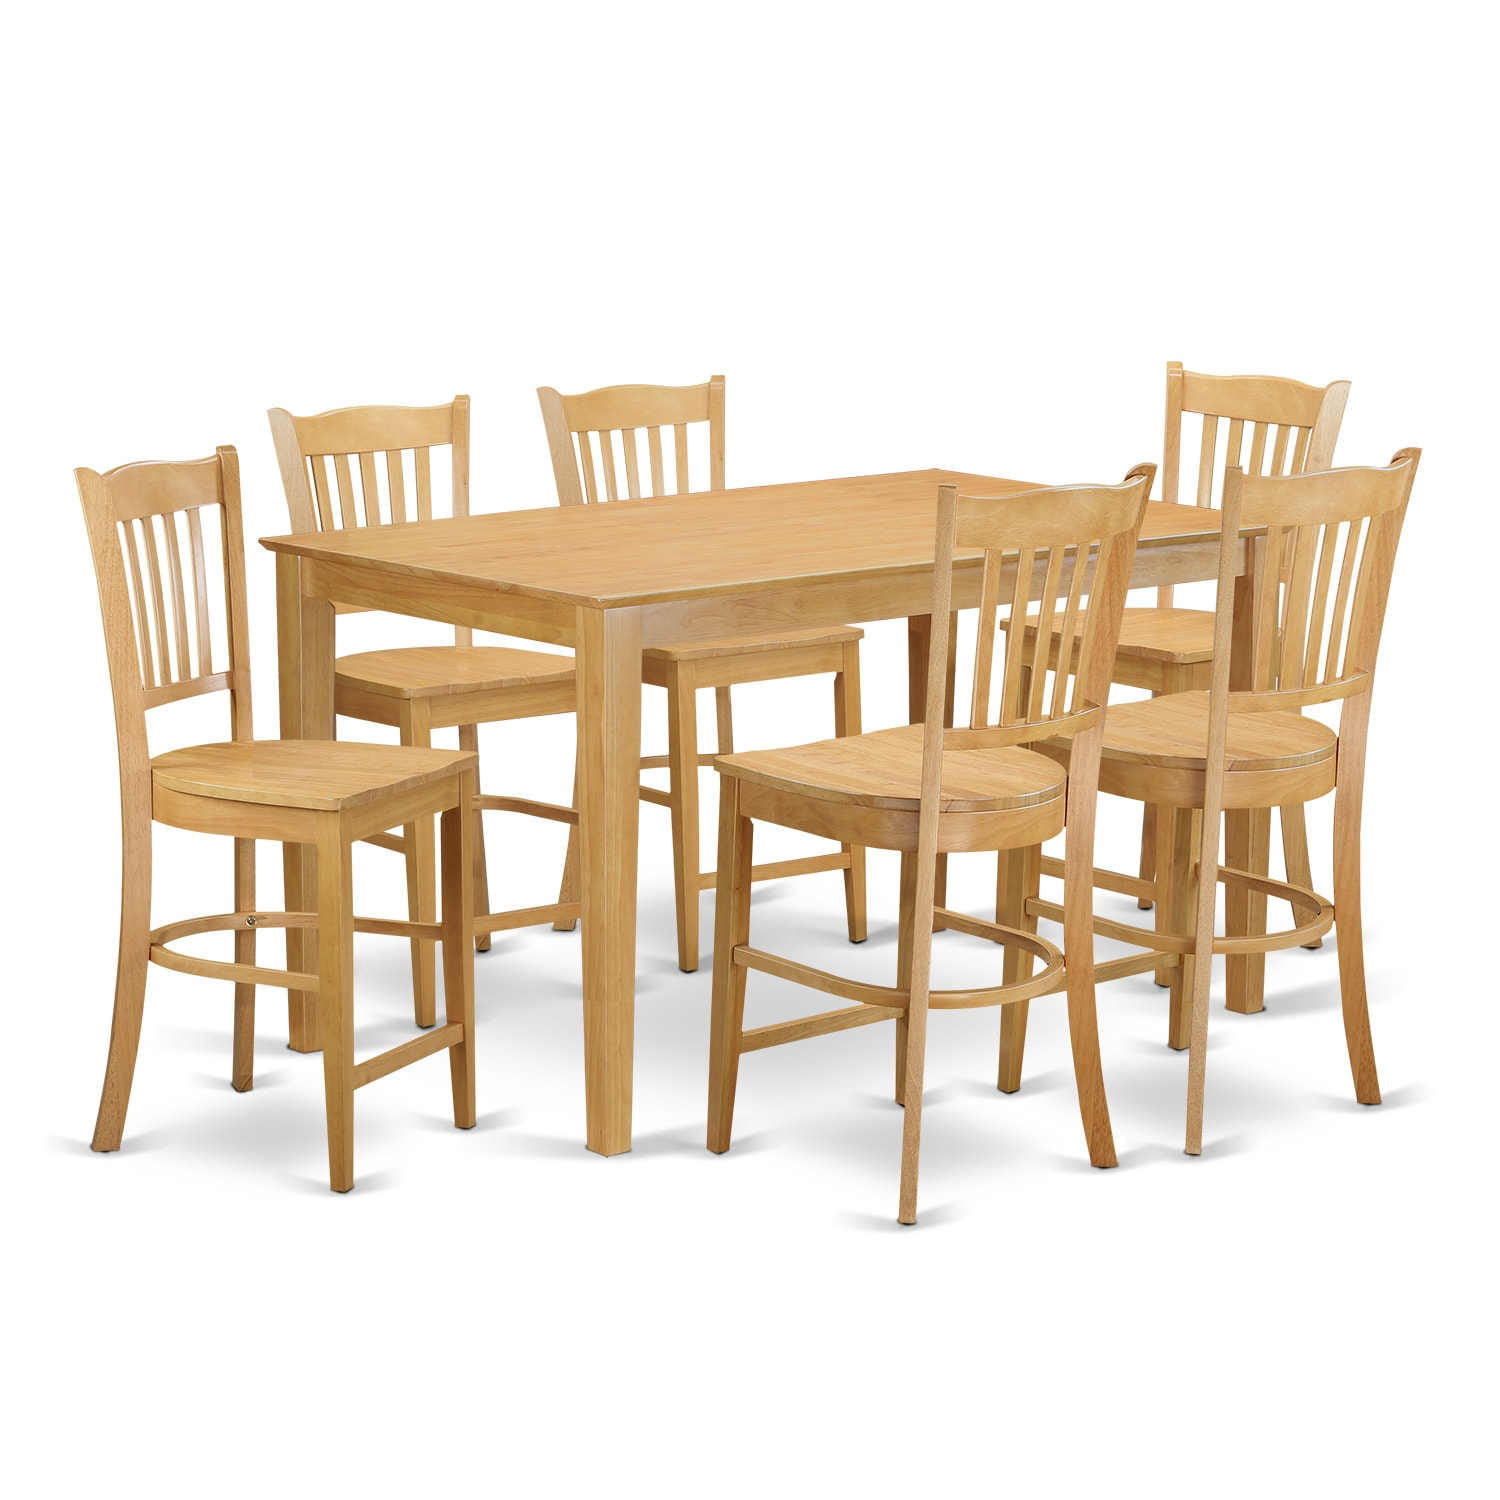 Superb Oak Finish Rubberwood 7 Piece Dining Room Pub Set With Co.